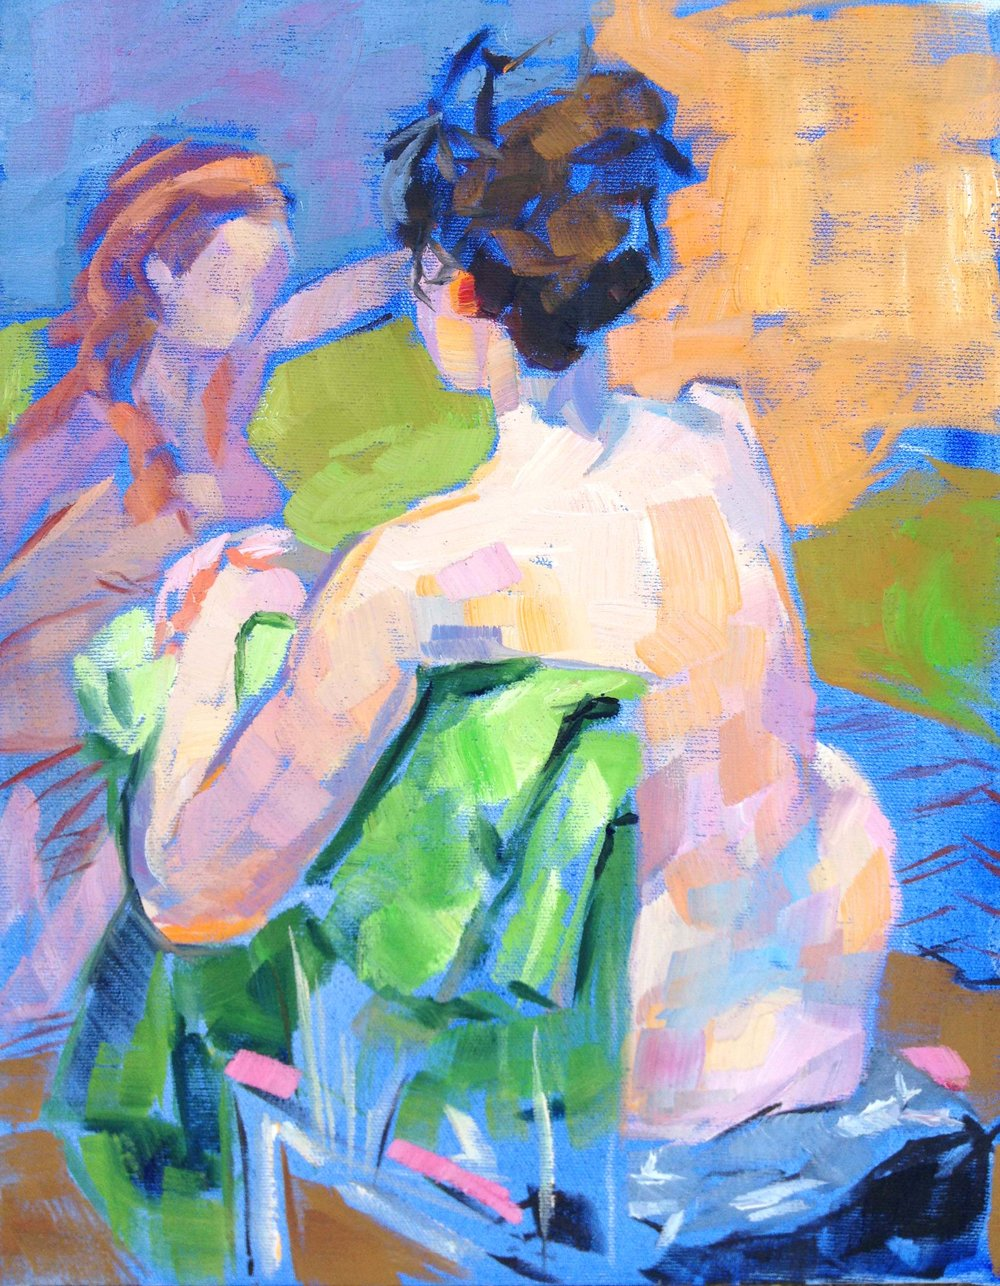 The figure painting that first caught Amy's eye in the window of Studio Hop - 11